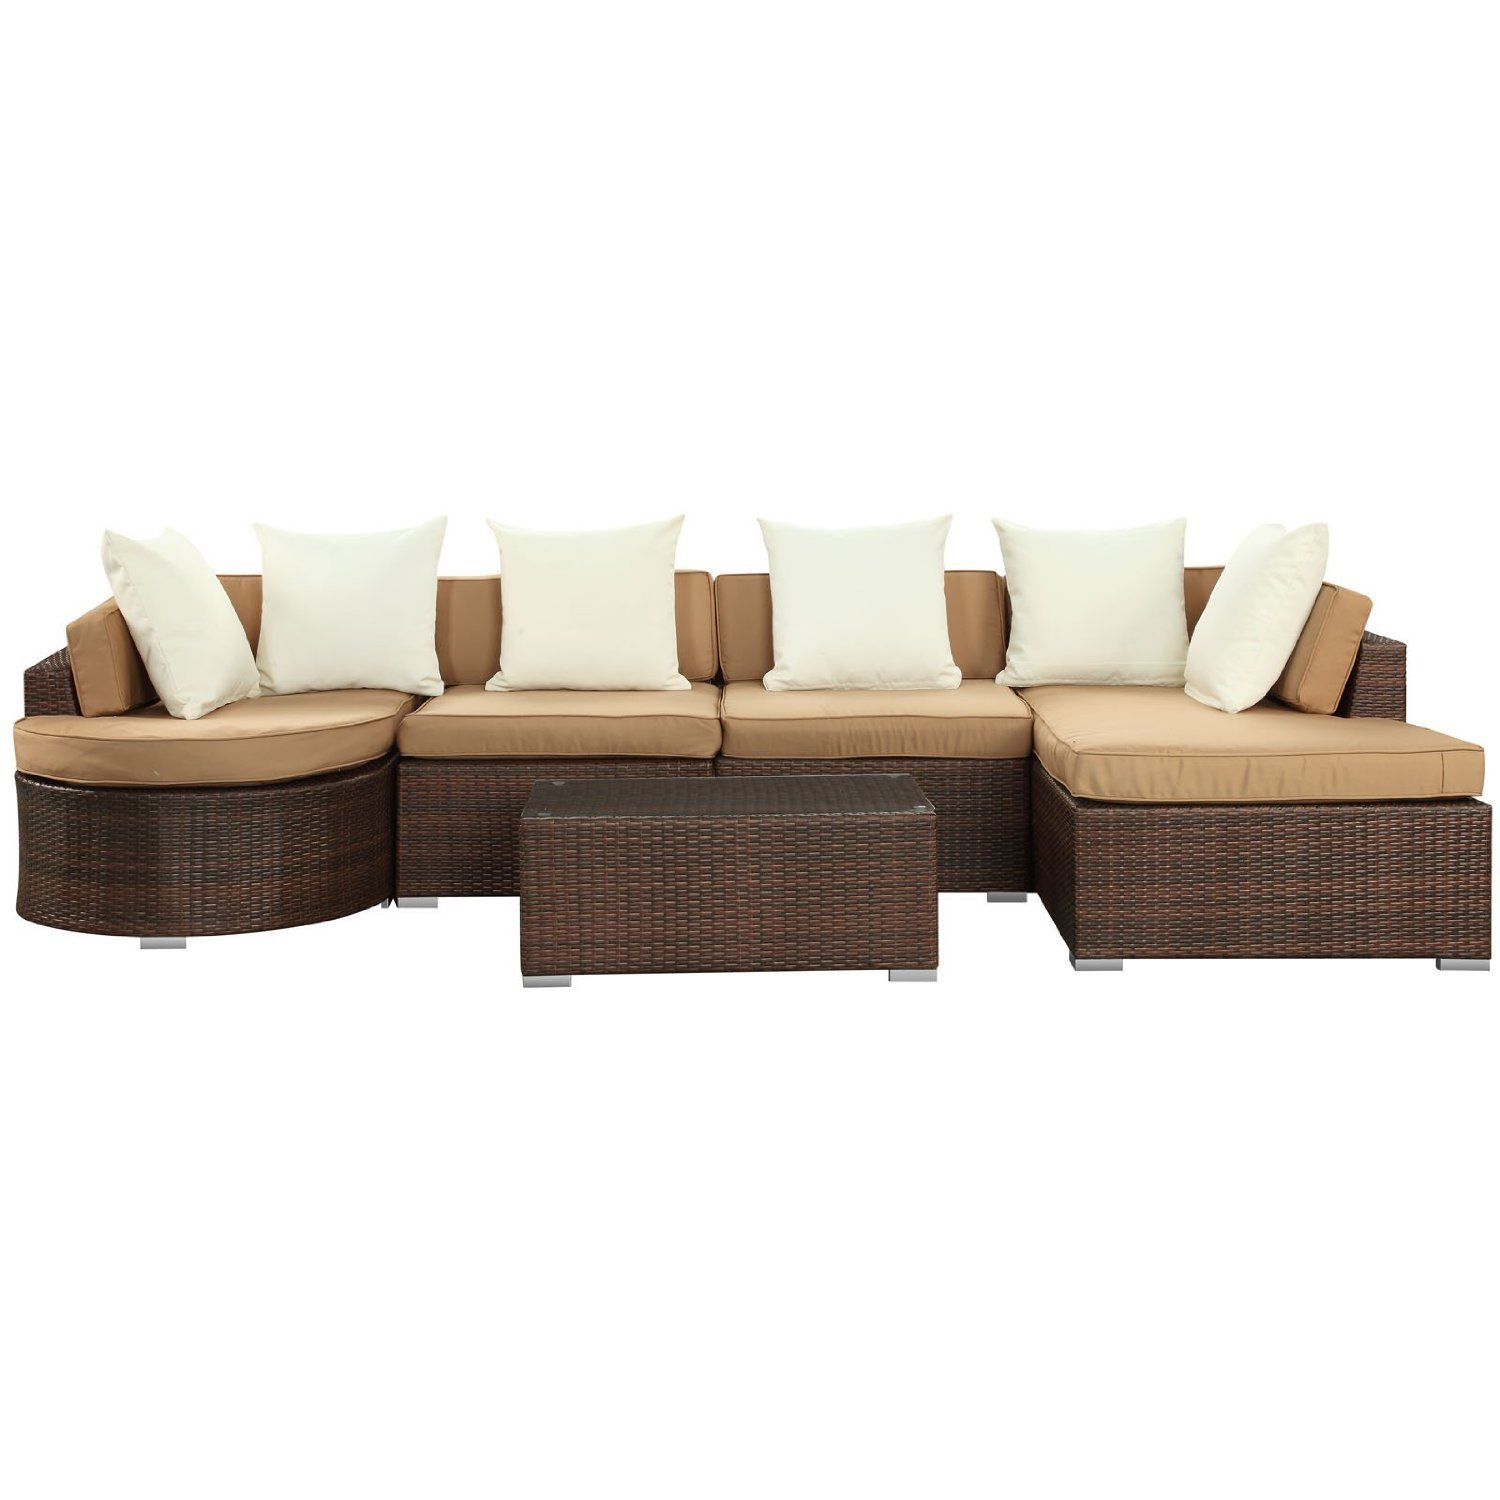 Lexmod Monterey Outdoor Wicker Rattan Sectional Sofa Set Seat Support Saver Modern Patio Home Decor Indoor And Out